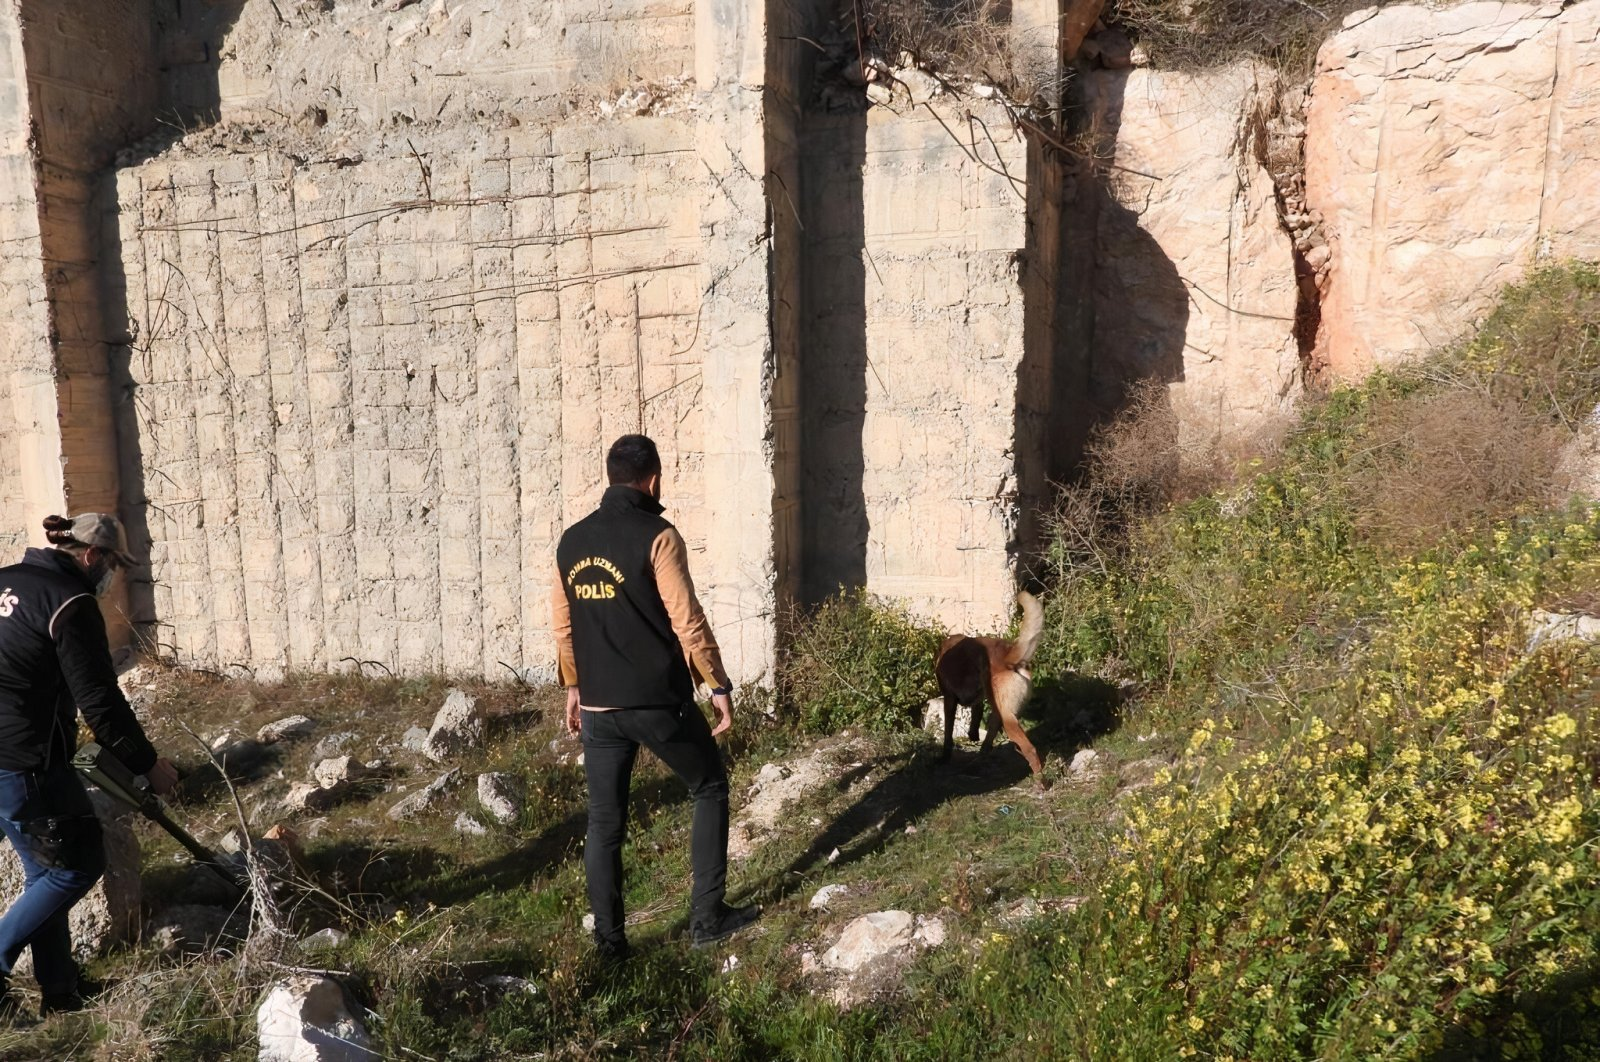 A team from the Şanlıurfa police station work near where almost 10 kilograms of explosives planted were found in stone pits close to the Şanlıurfa-Adıyaman highway, March 12, 2021 (IHA Photo)